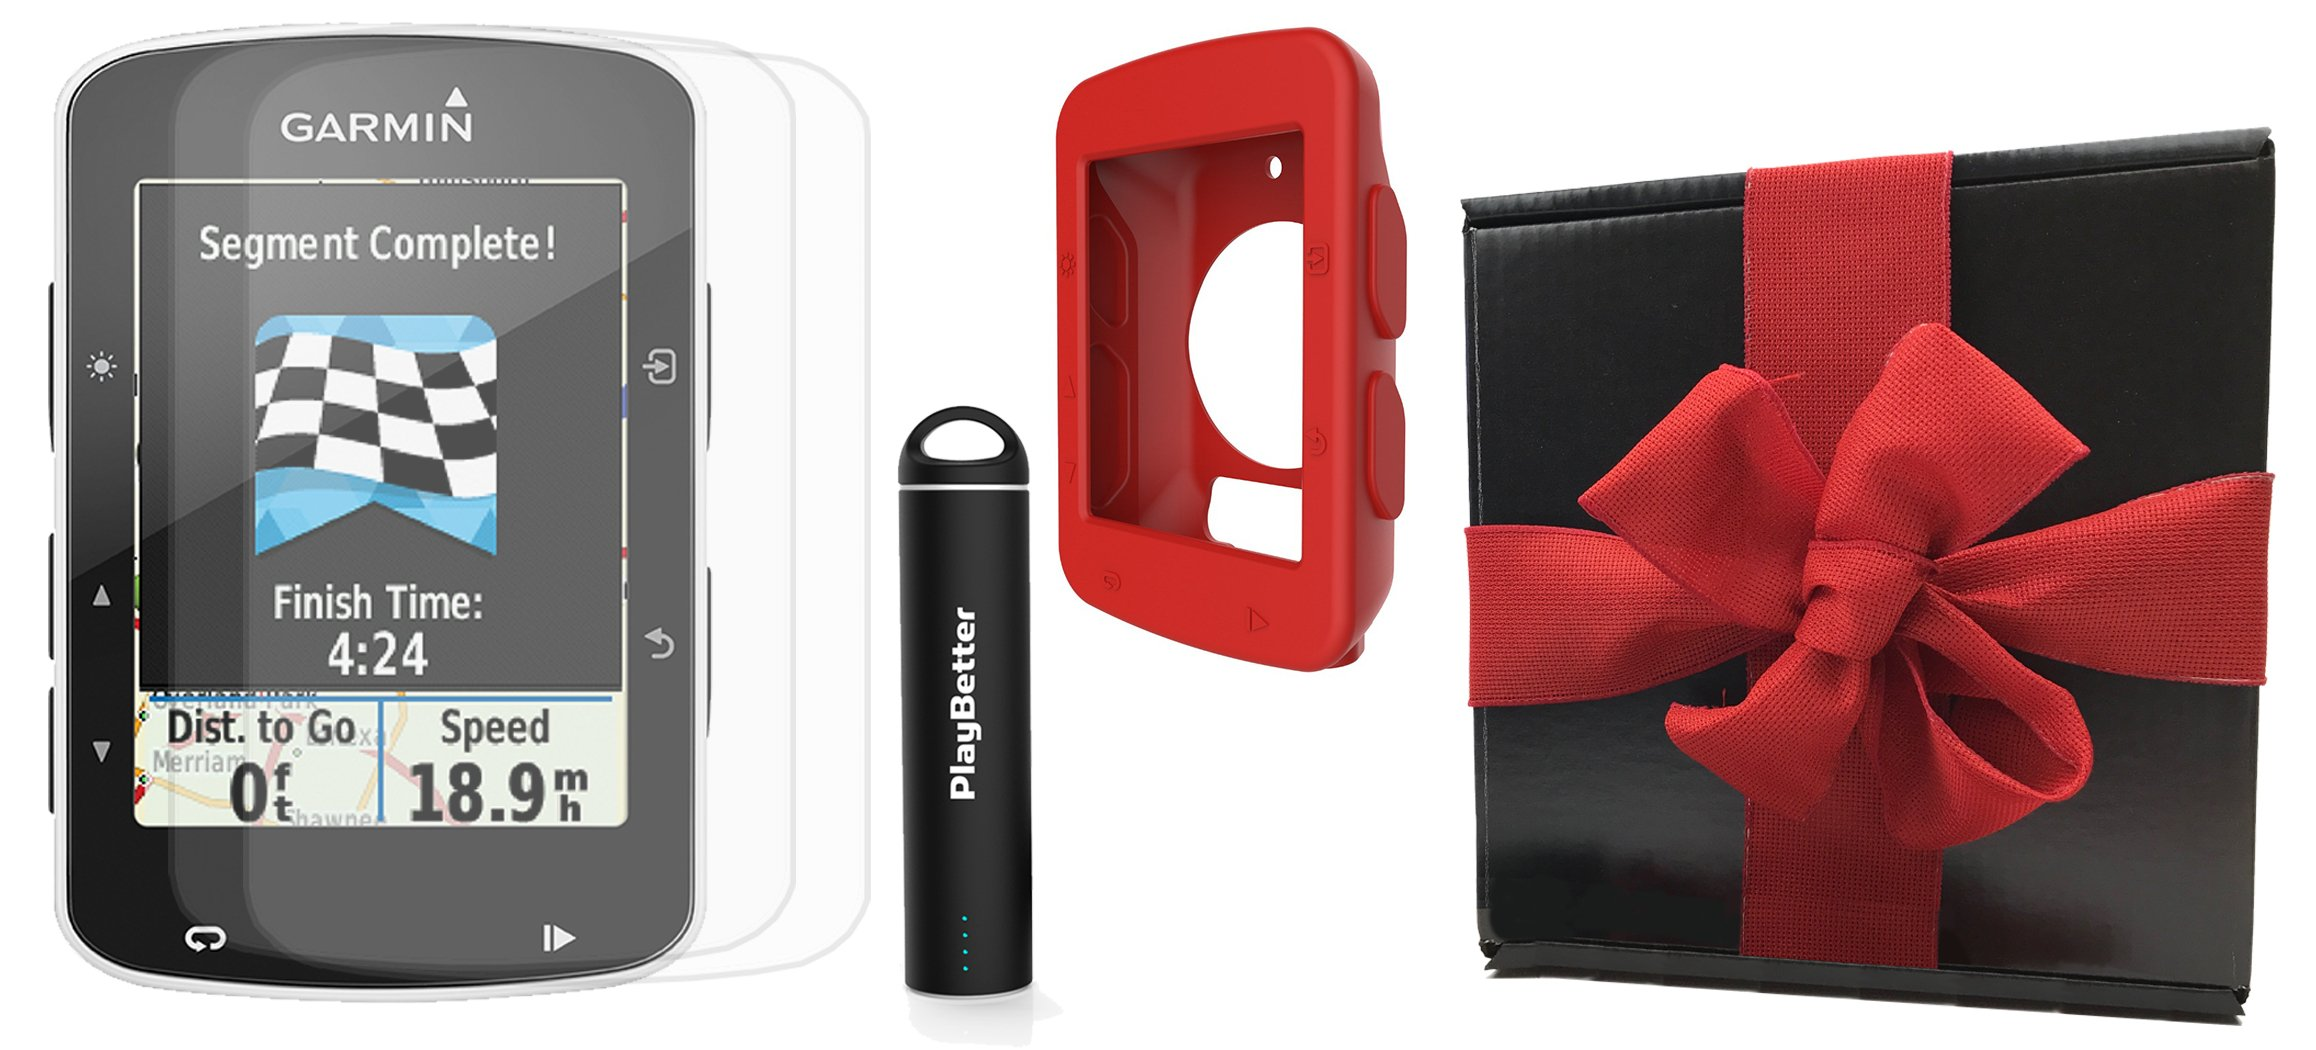 Garmin Edge 520 Gift Box Bundle | with PlayBetter Silicone Case, Portable Charger & HD Screen Protectors | Bike Mounts | GPS Bike Computer | Gift Box (Red, GPS Only)